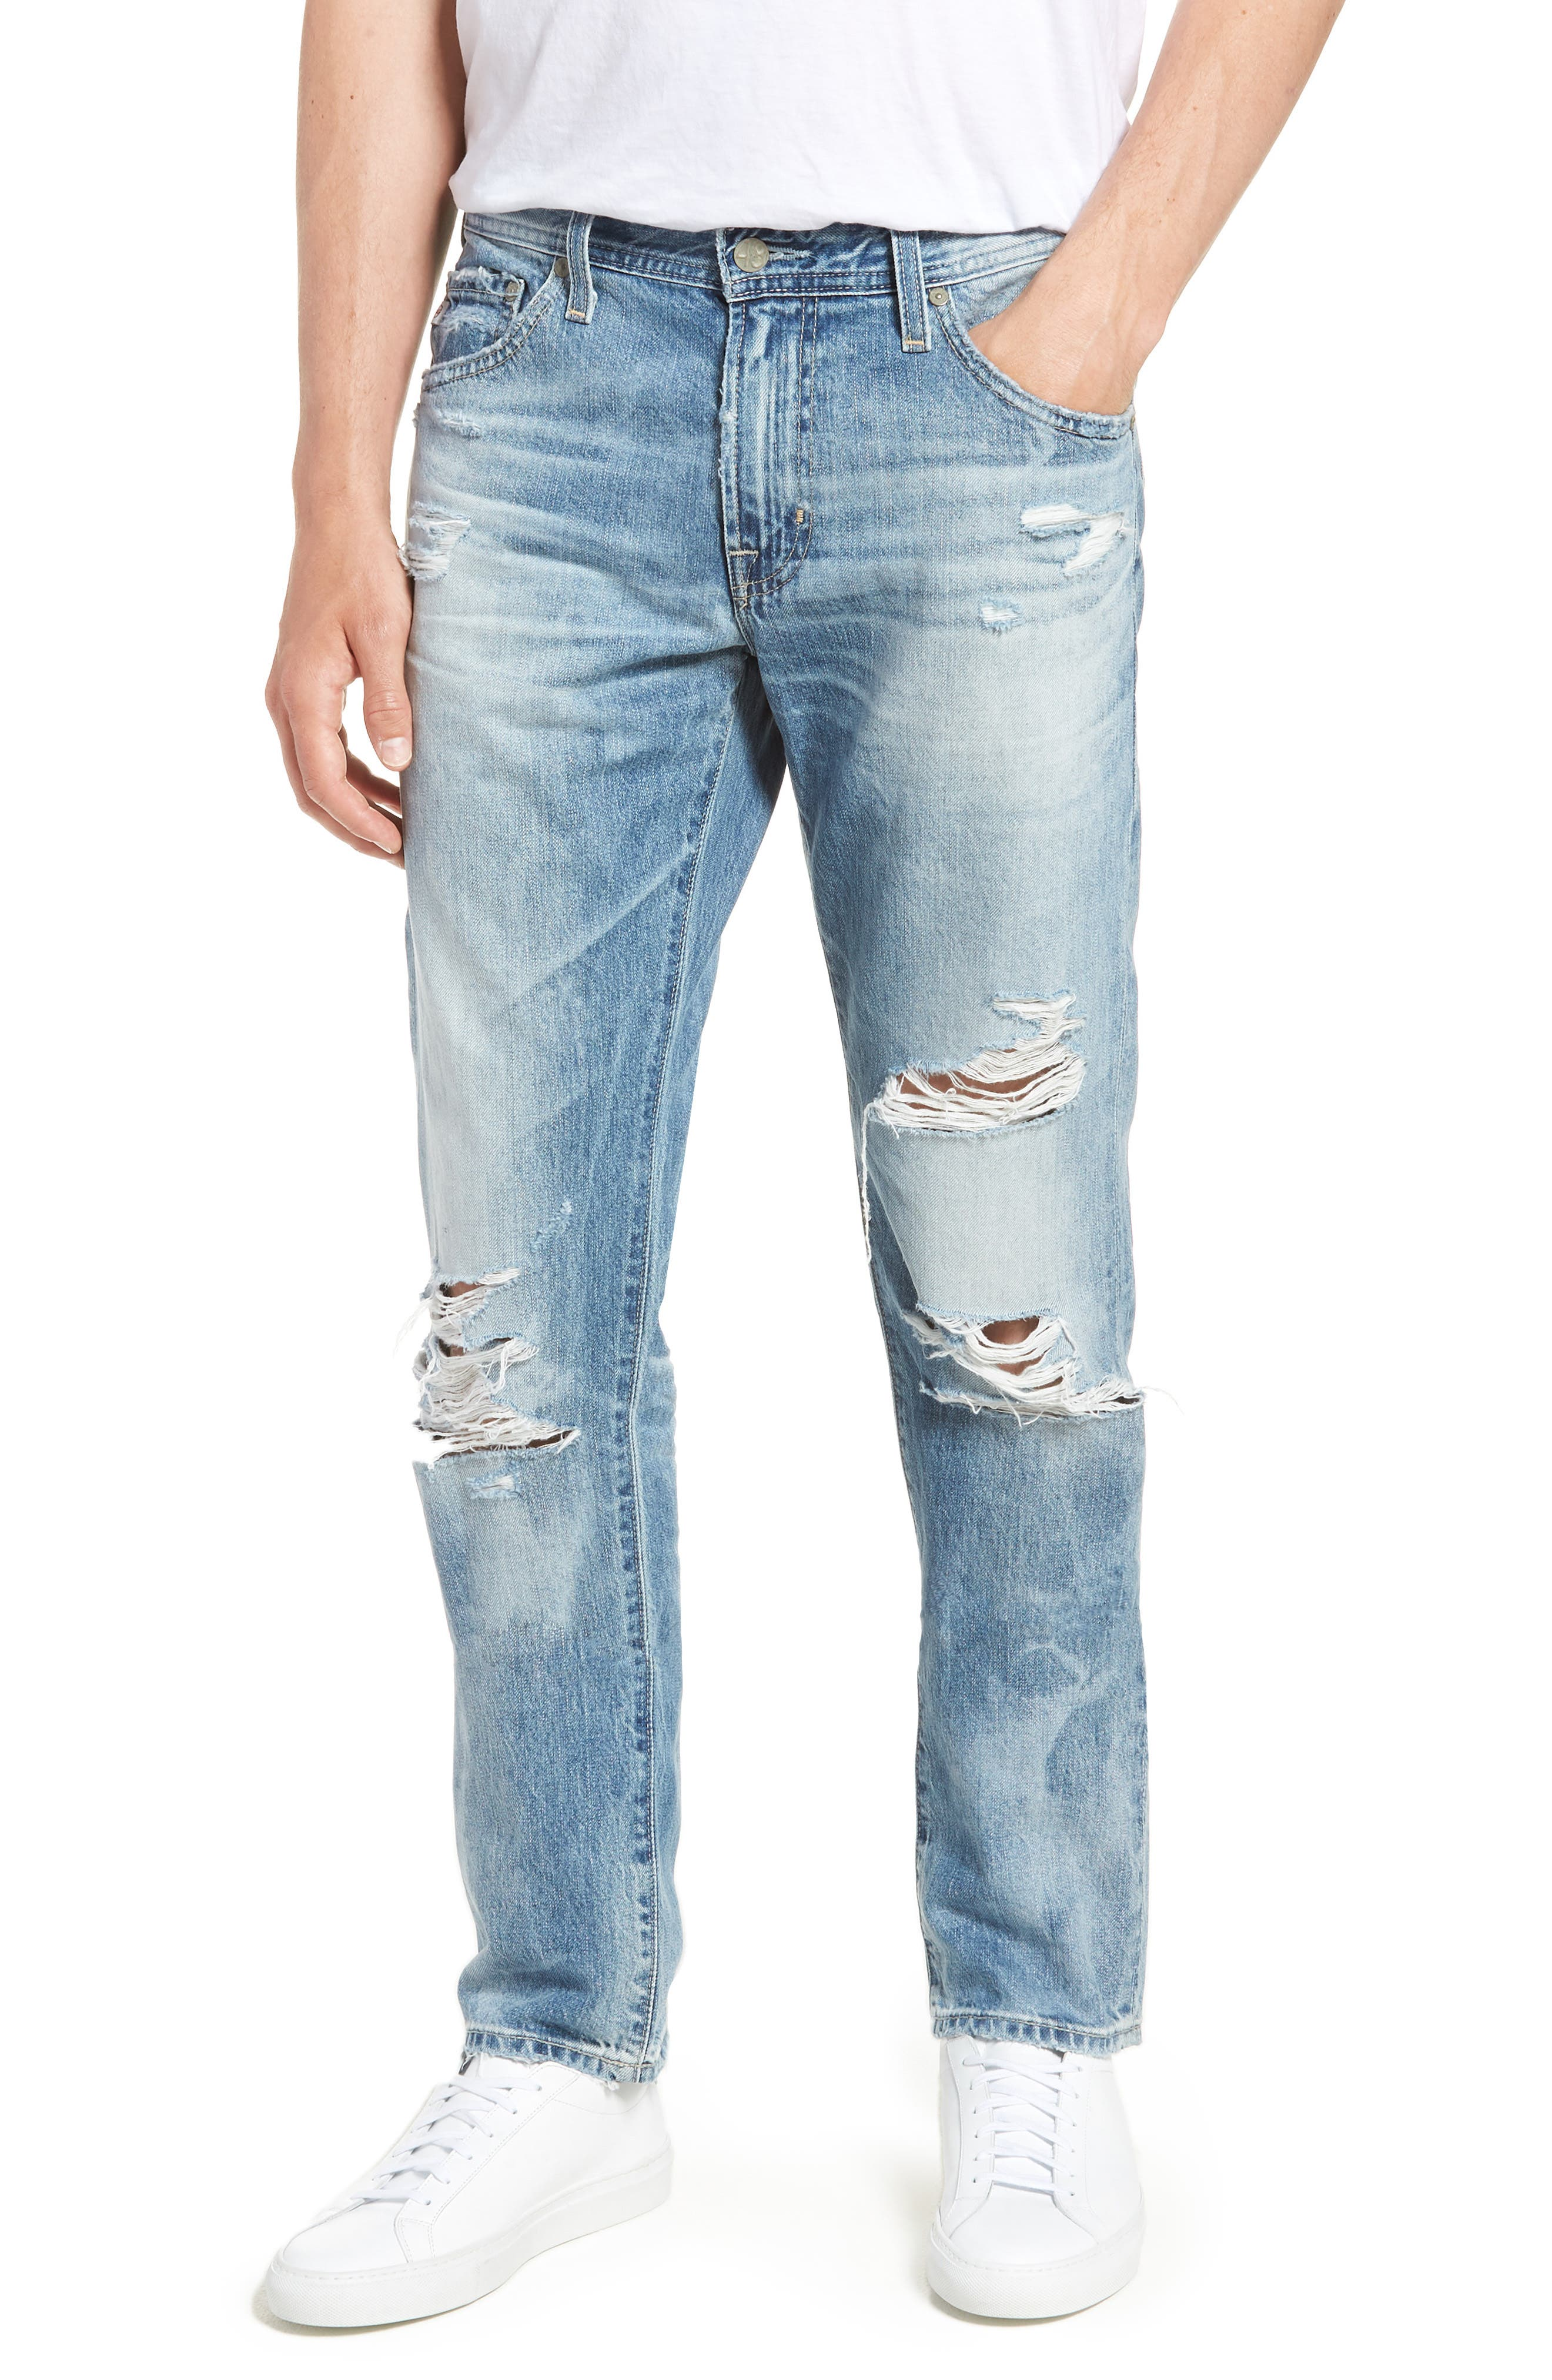 Tellis Slim Fit Jeans,                         Main,                         color, 23 Years Shearwater